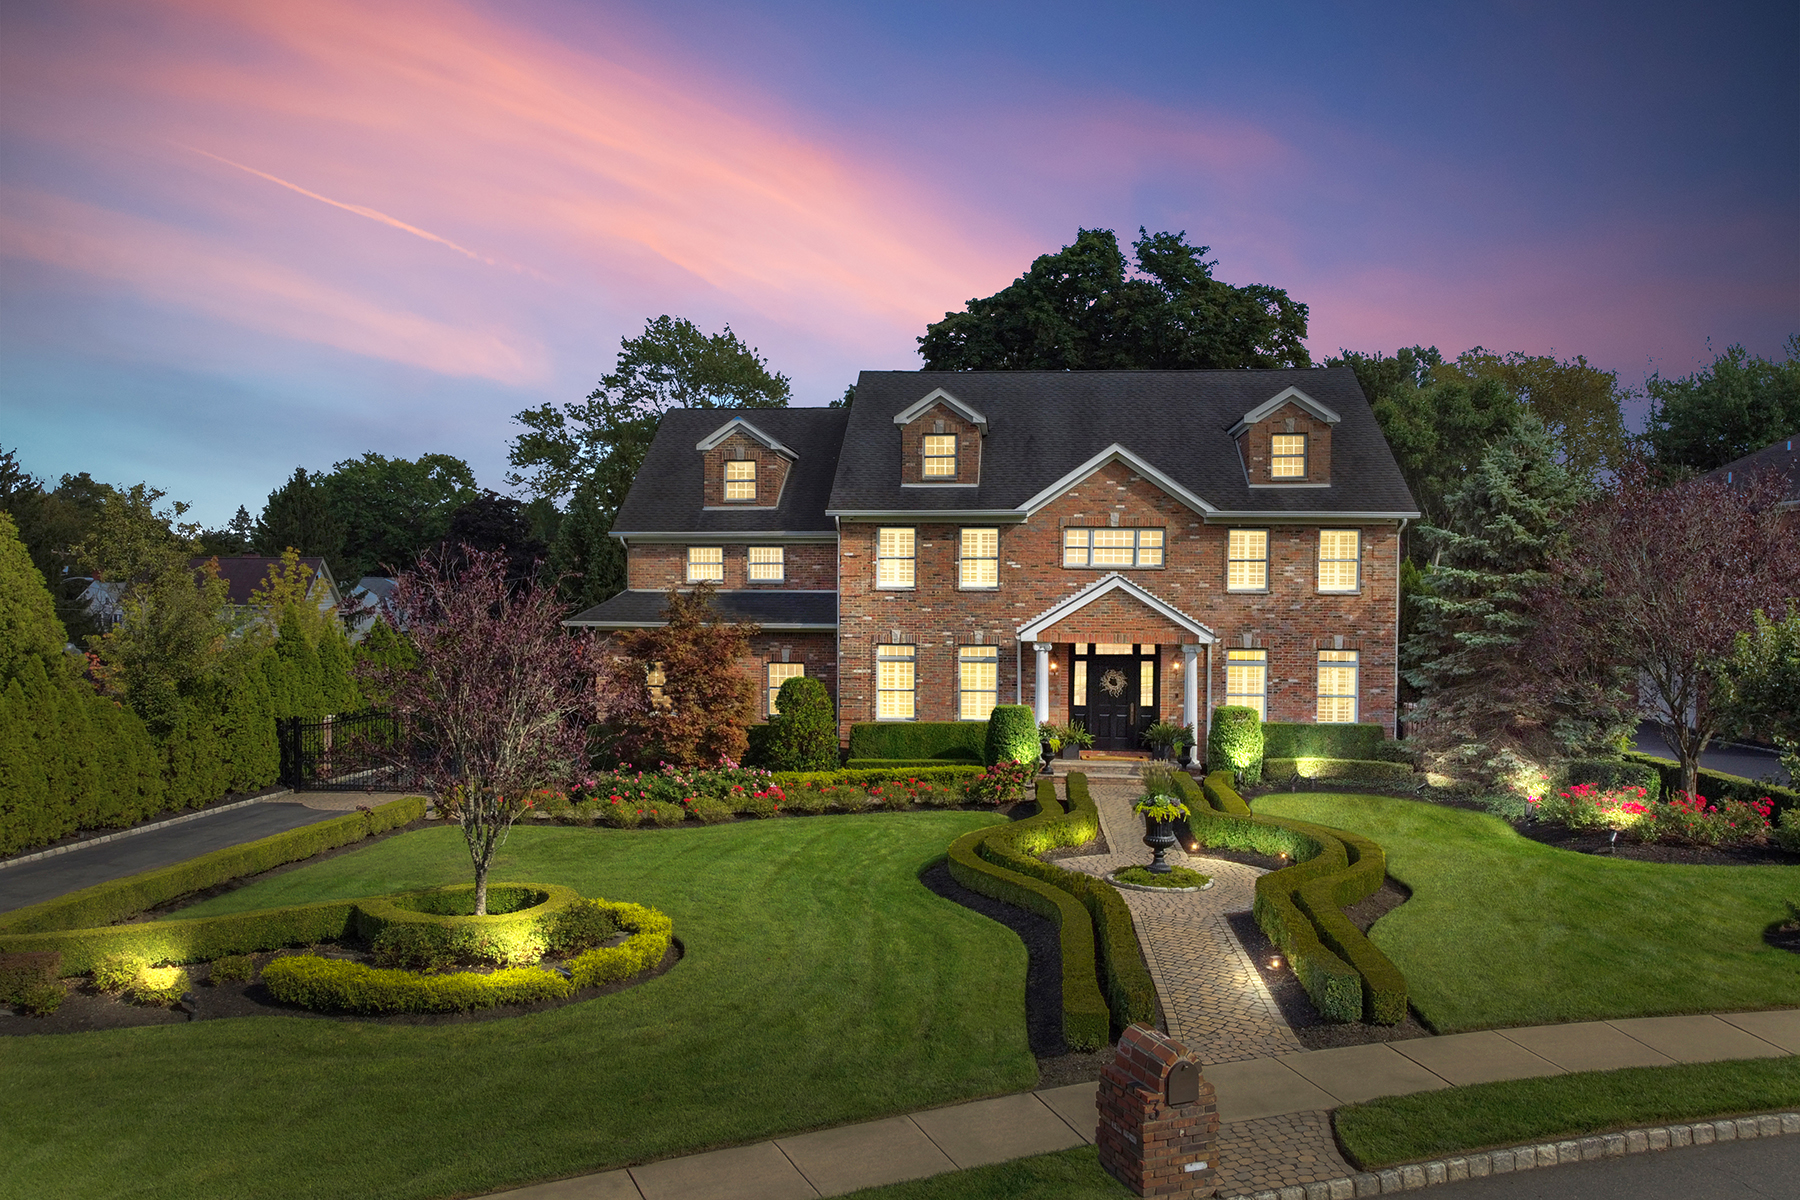 Single Family Homes for Sale at Custom-Built Colonial 3 Francesca Court, East Hanover, New Jersey 07936 United States